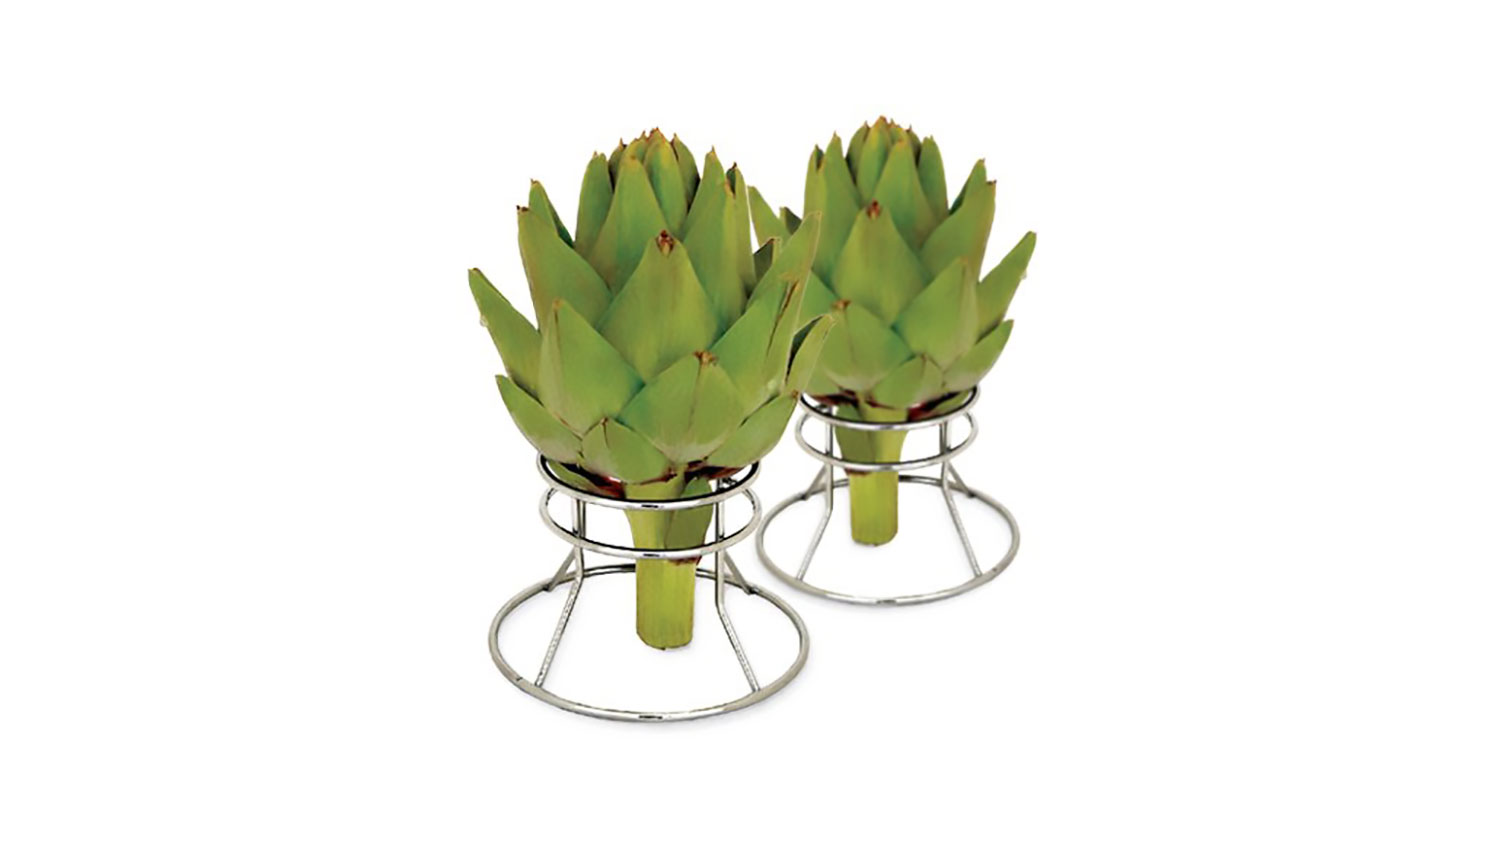 Artichoke Holder